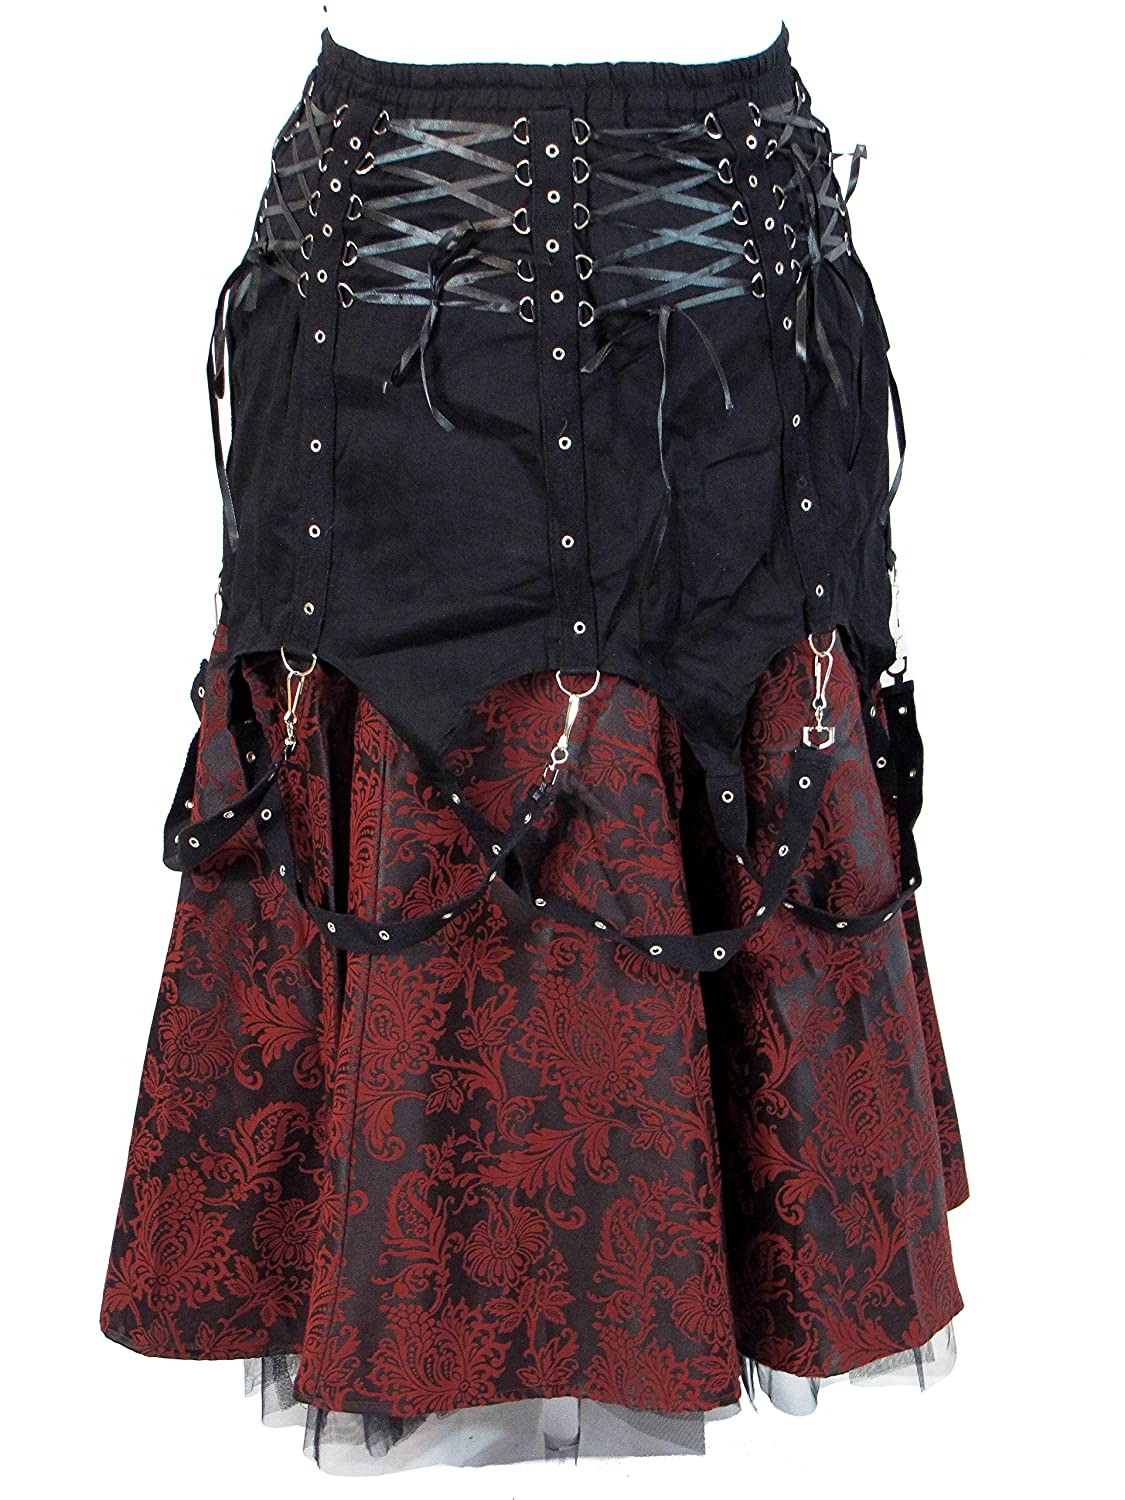 a971906ee6 Dark Star Black Red Brocade Gothic Medieval Punk Chains Long Skirt M-2X  Plus Size at Amazon Women's Clothing store: